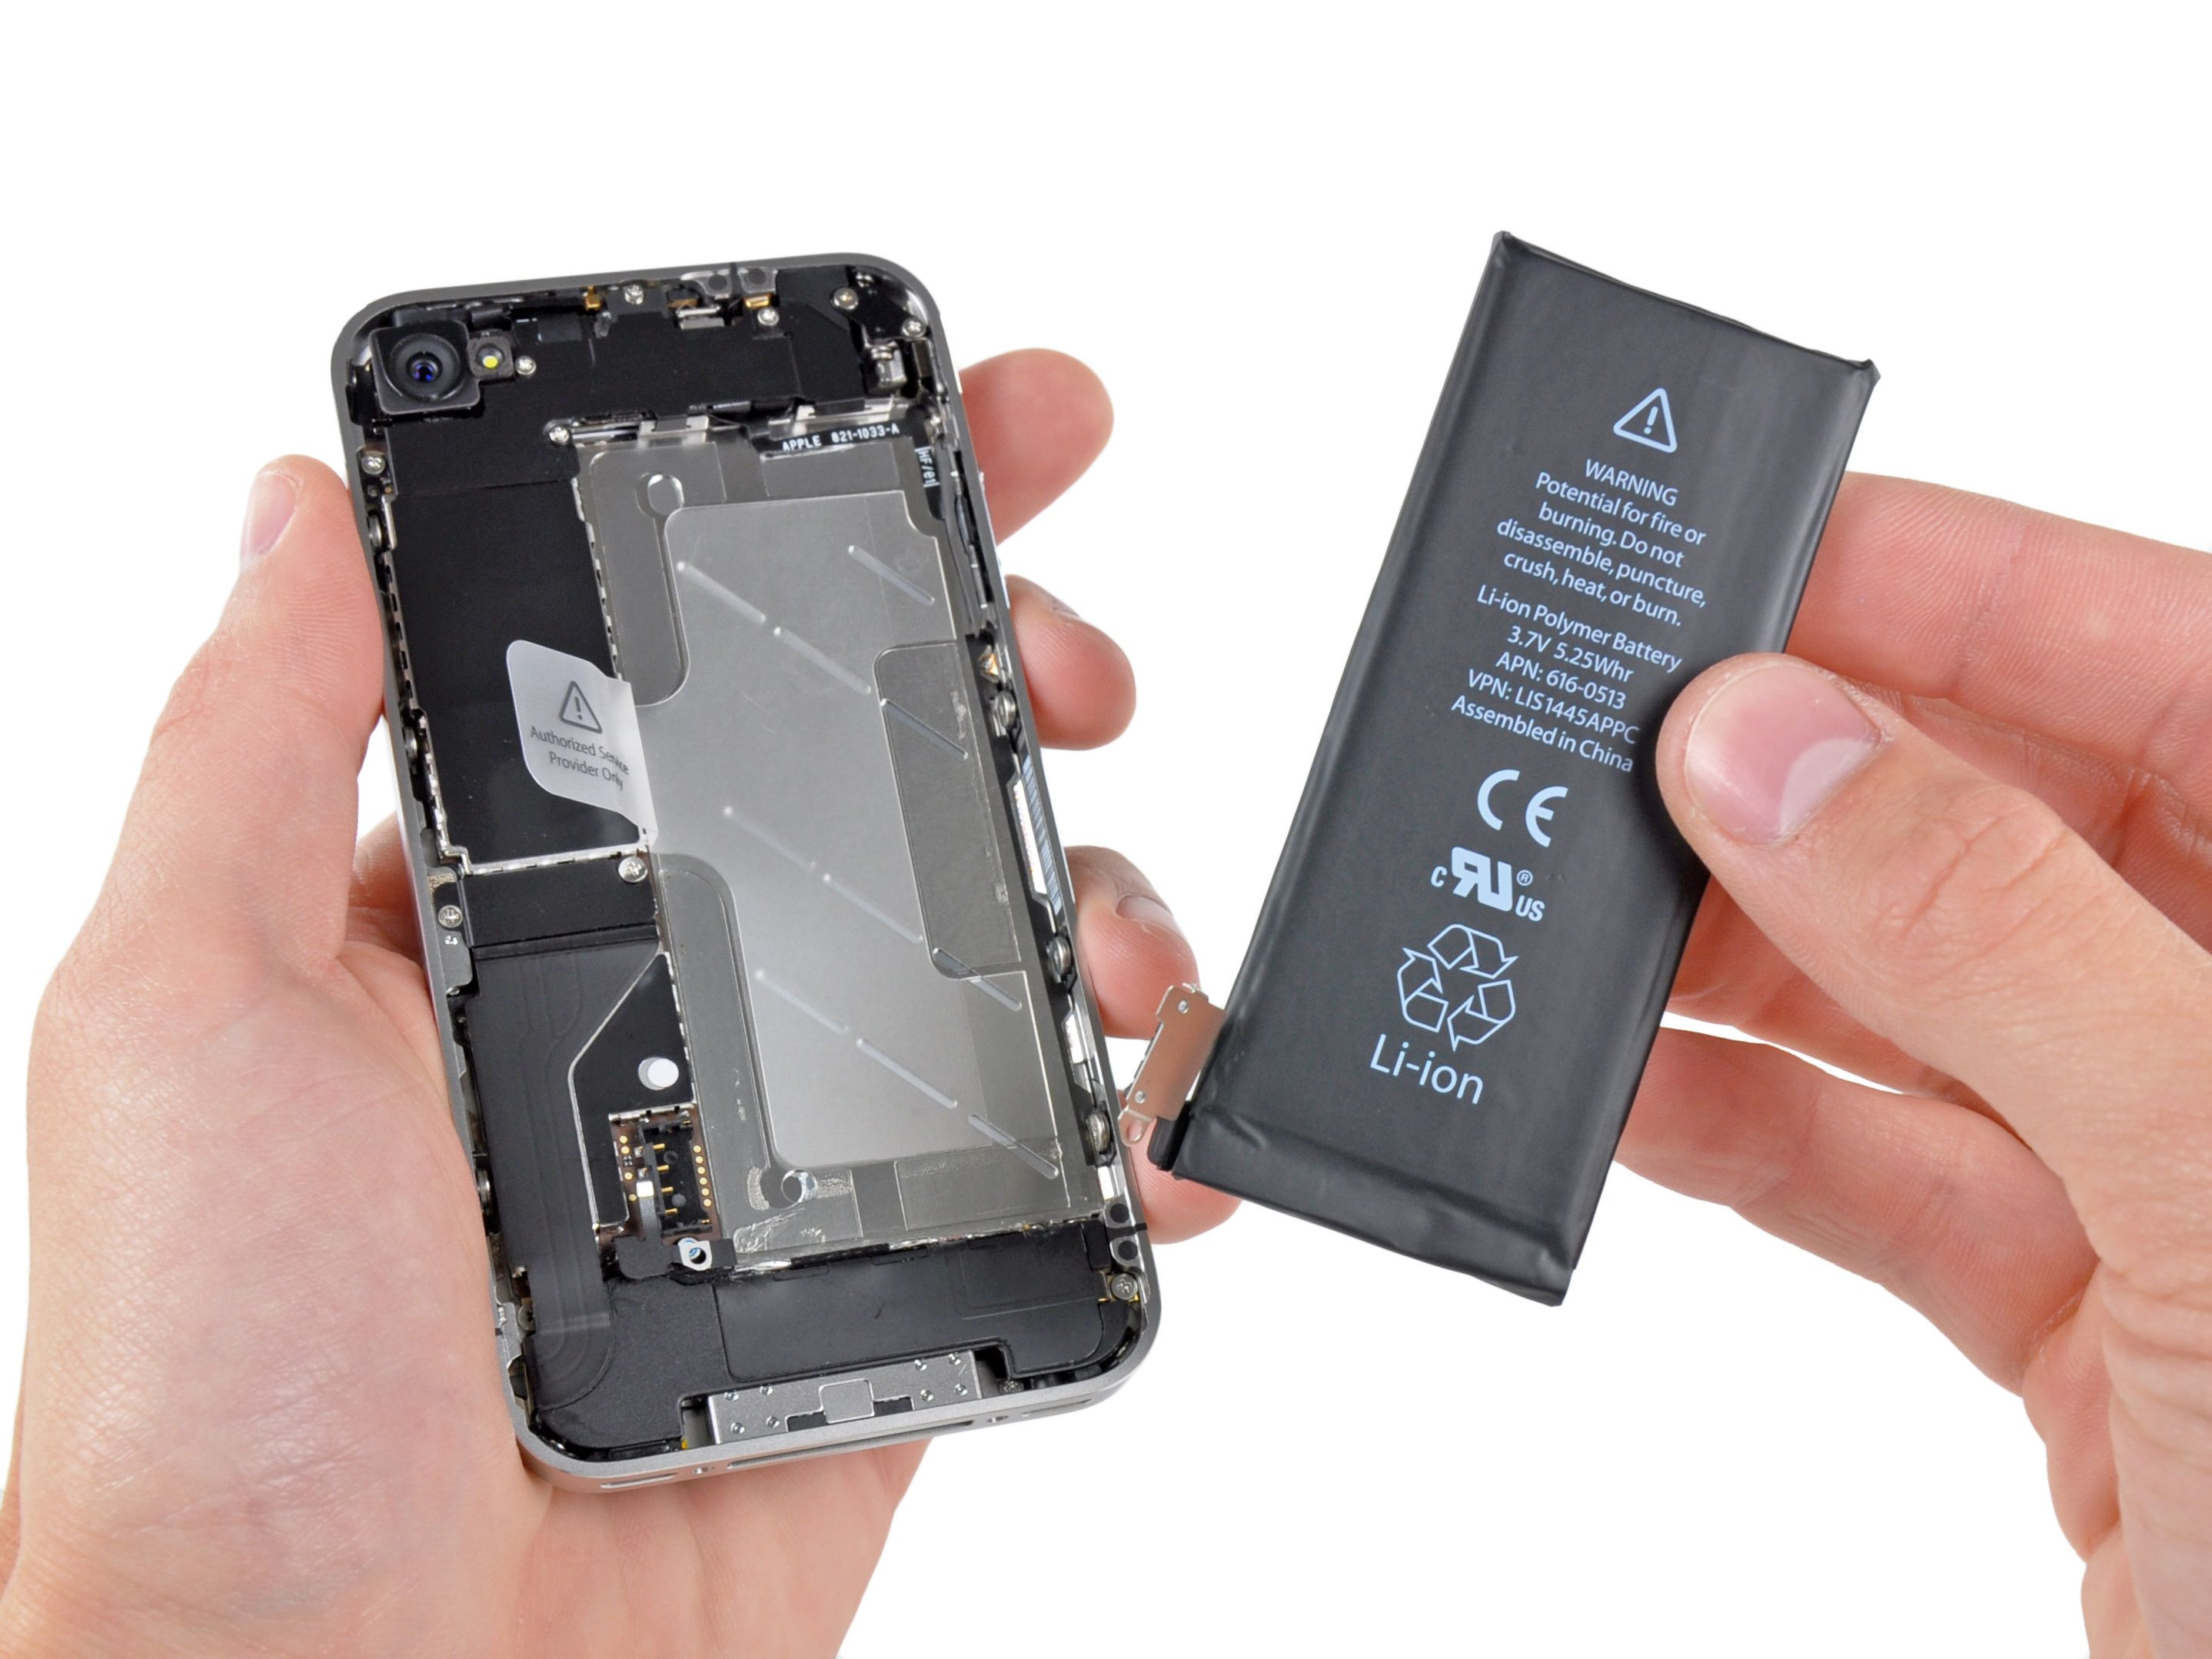 The tale of the Apple battery